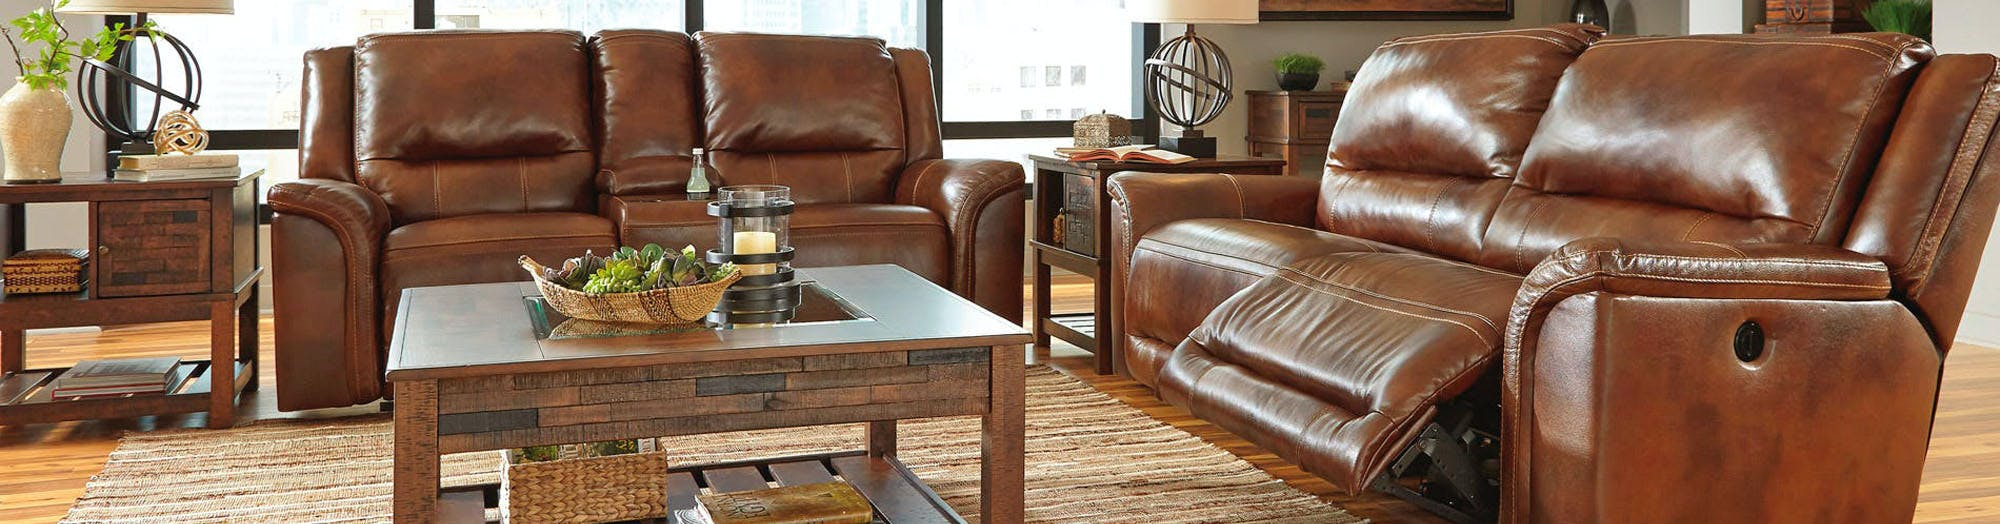 Shop For Living Room Sets In Cincinnati And Dayton OH